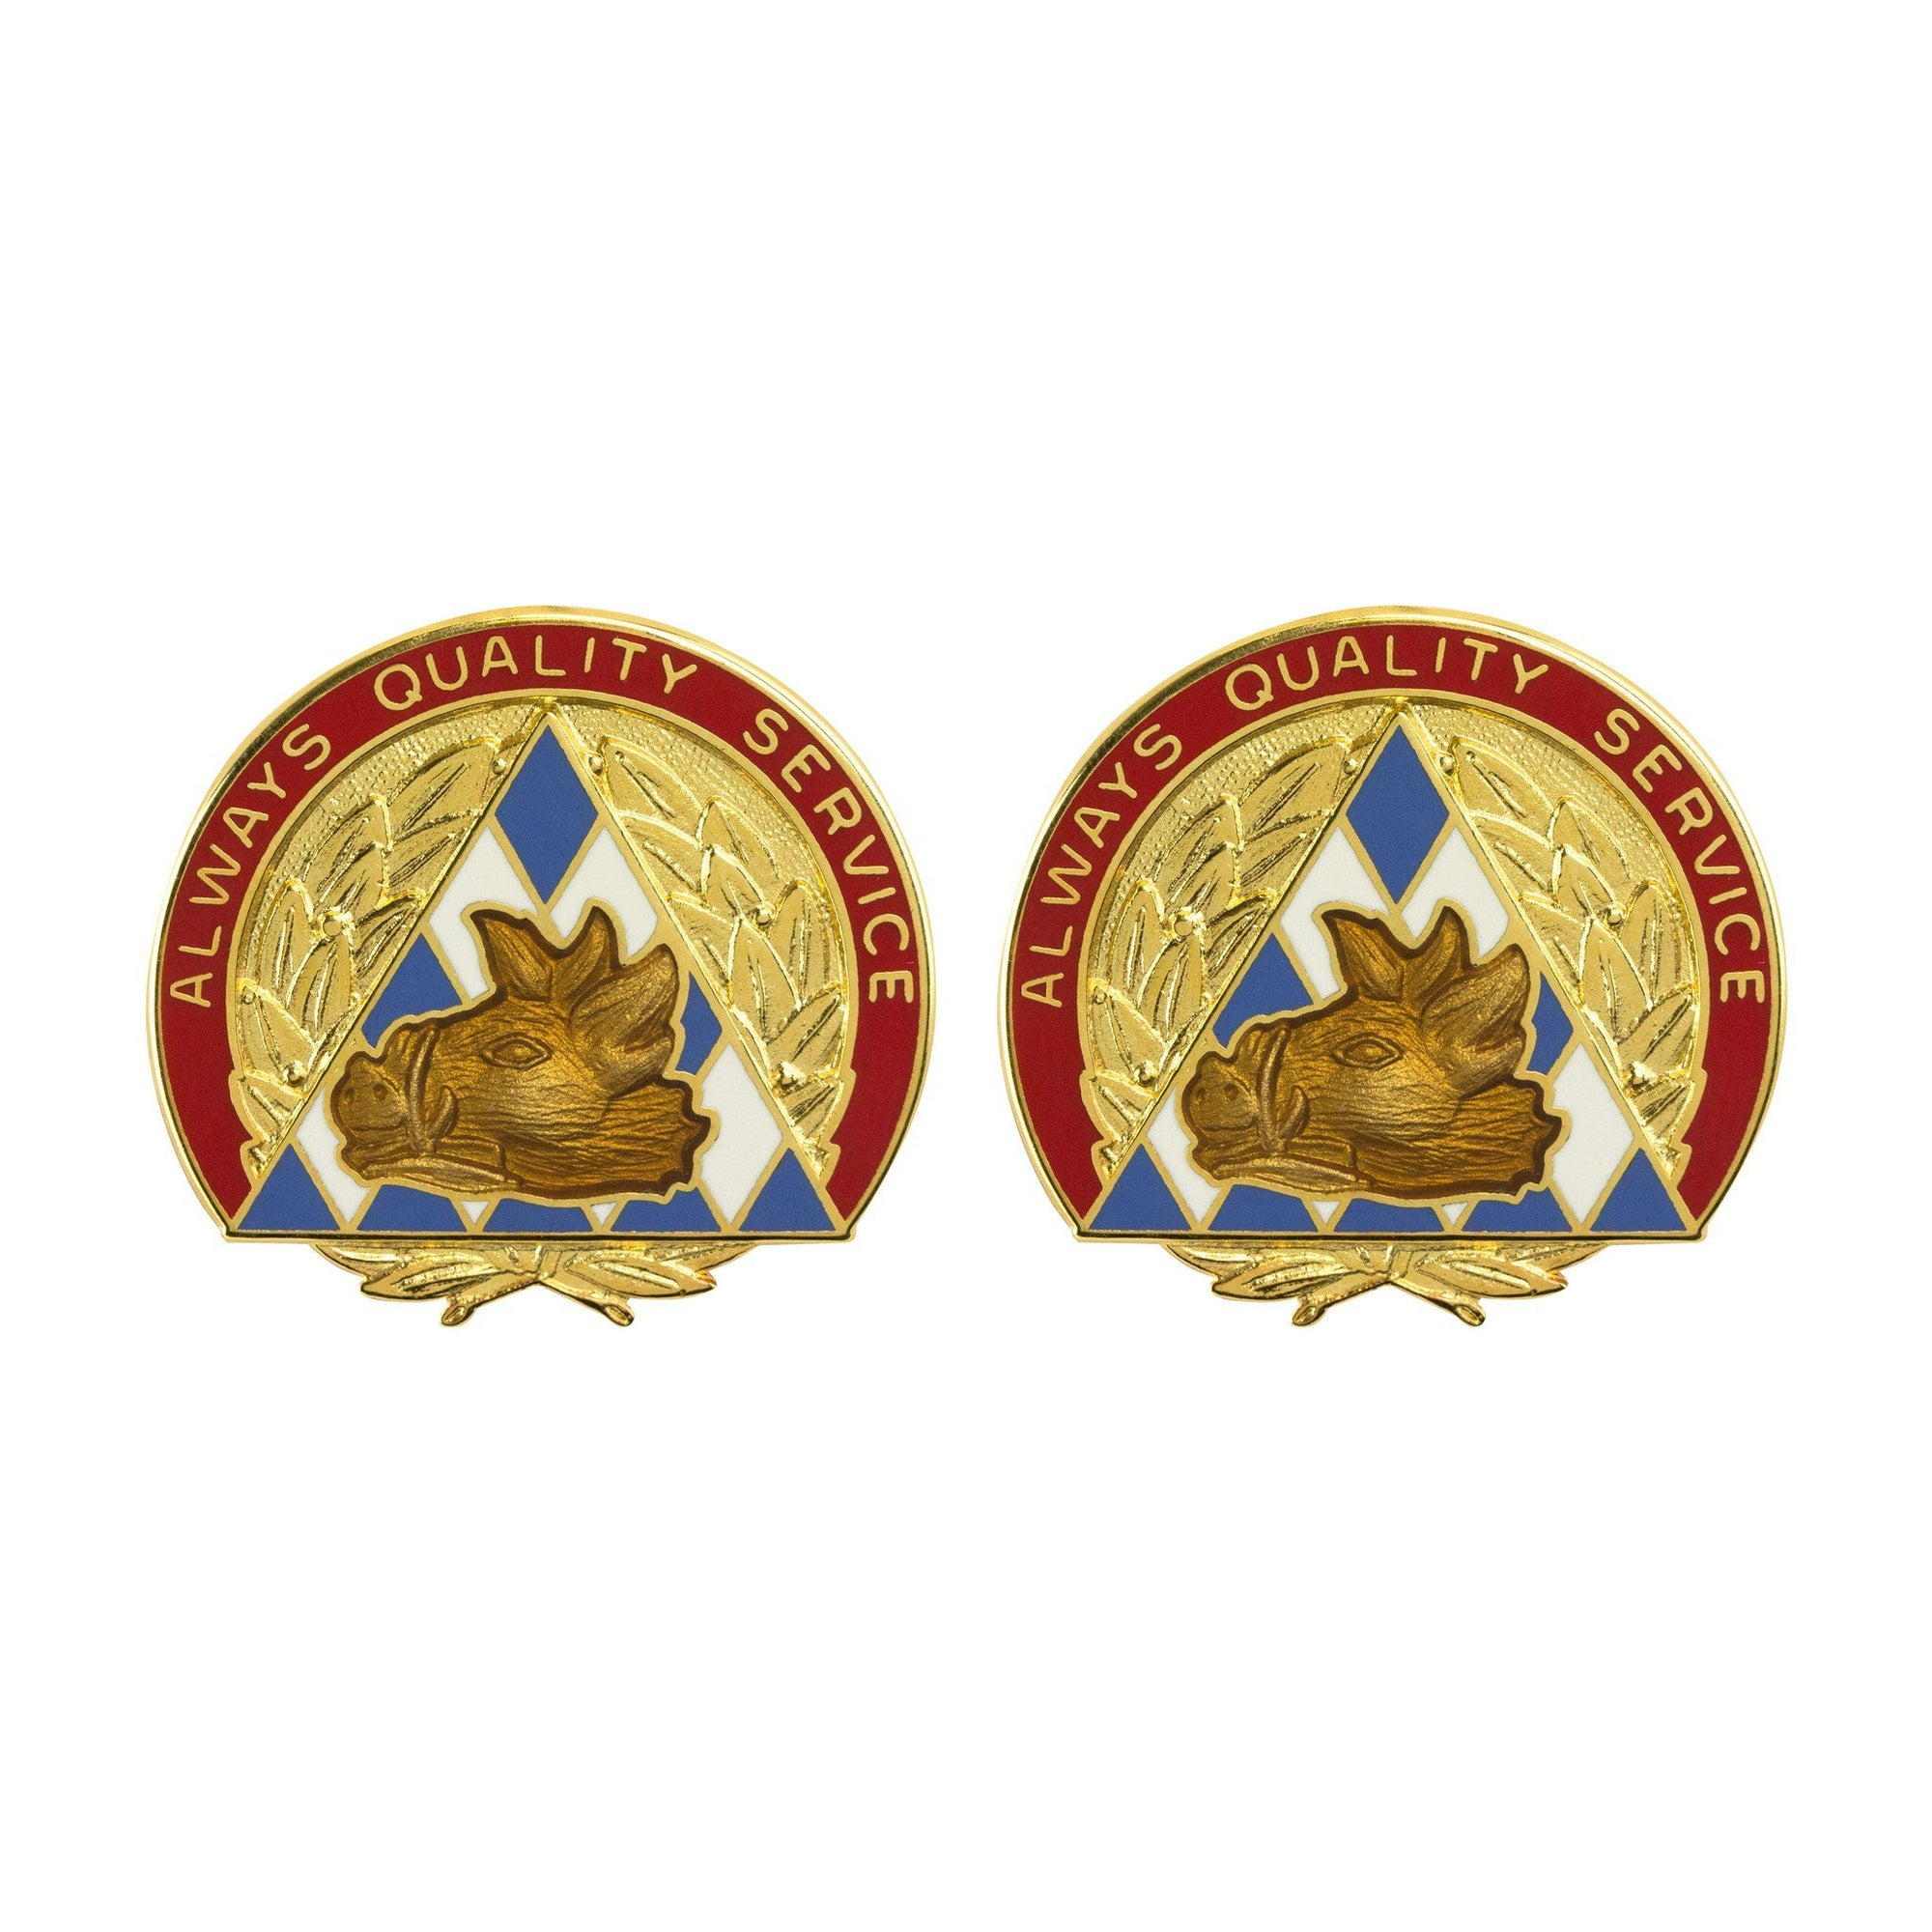 Army Unit Crests - 100th Area Support Group Unit Crest (Always Quality Service) -   jetcube